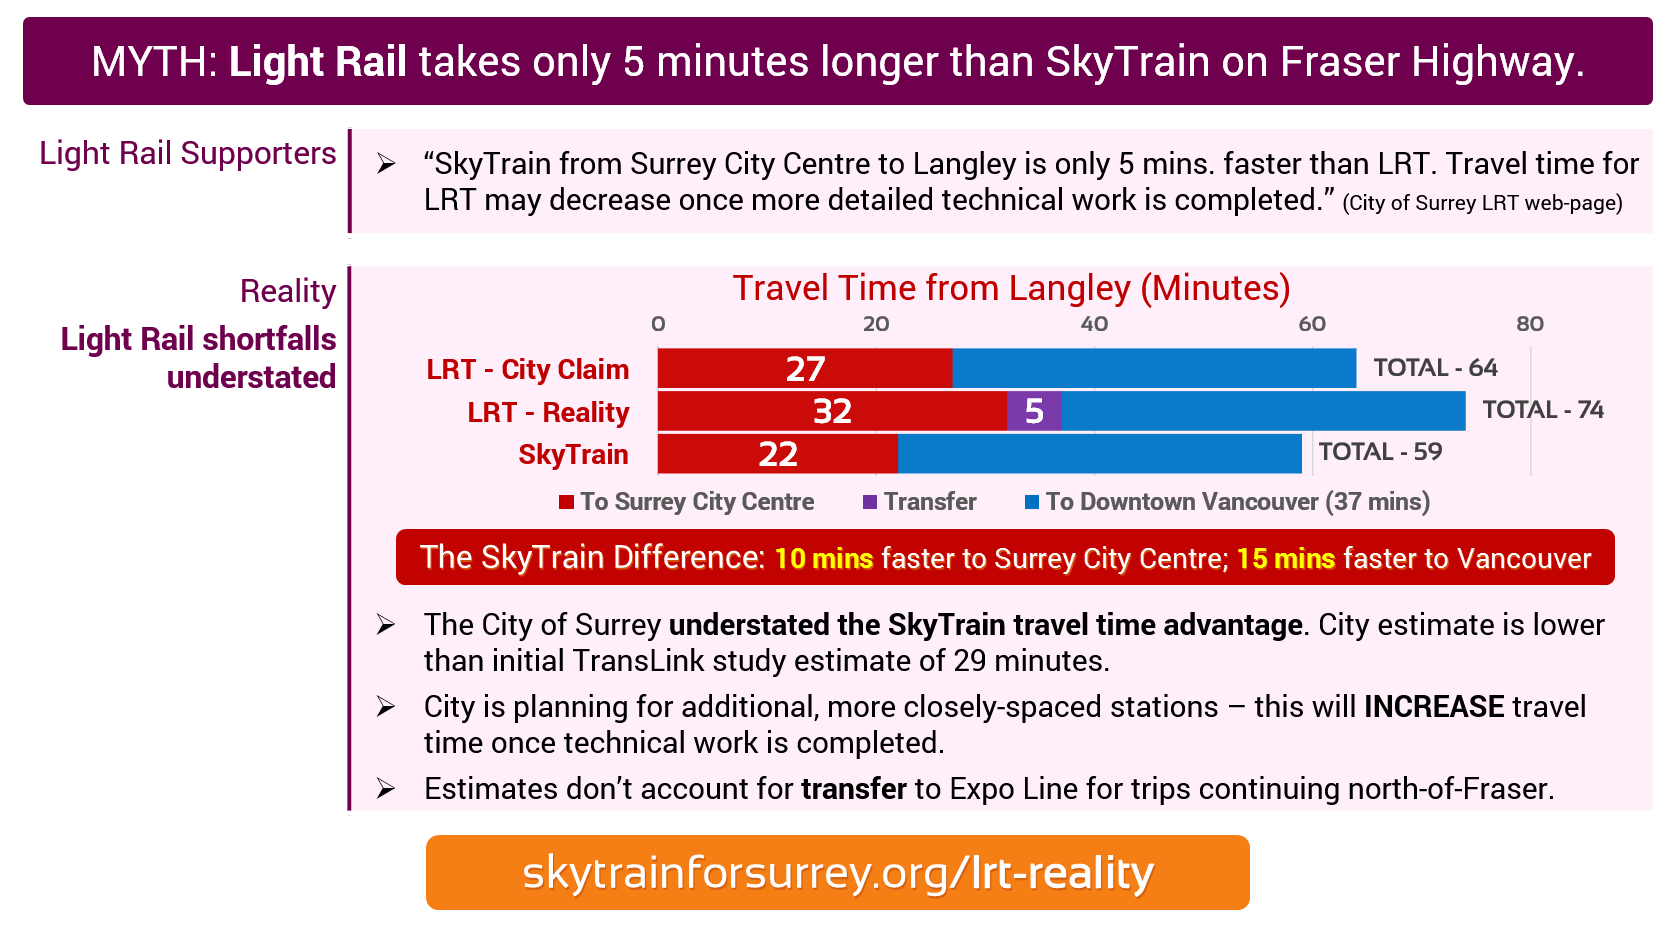 MYTH: Light Rail takes only 5 minutes longer than SkyTrain on Fraser Highway; REALITY: Light Rail shortfalls understated by city.